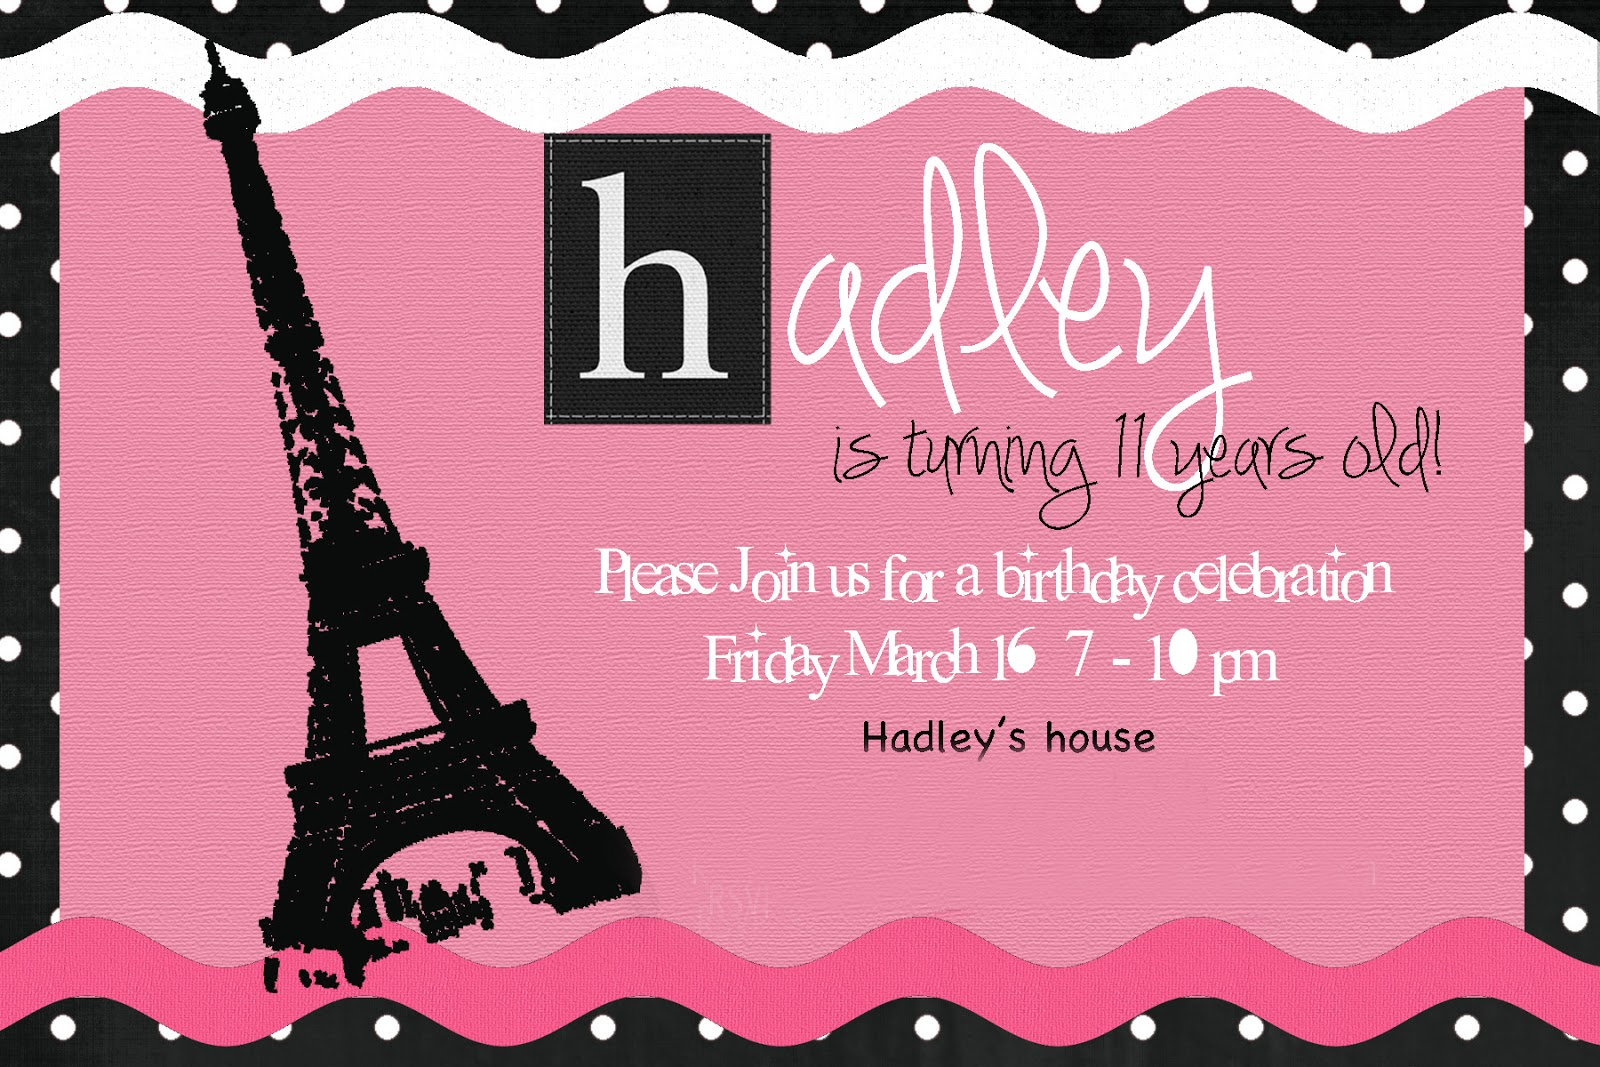 Night in Paris Theme Birthday http://sealbark.blogspot.com/2012/04/ooh-la-la-paris-birthday-party.html